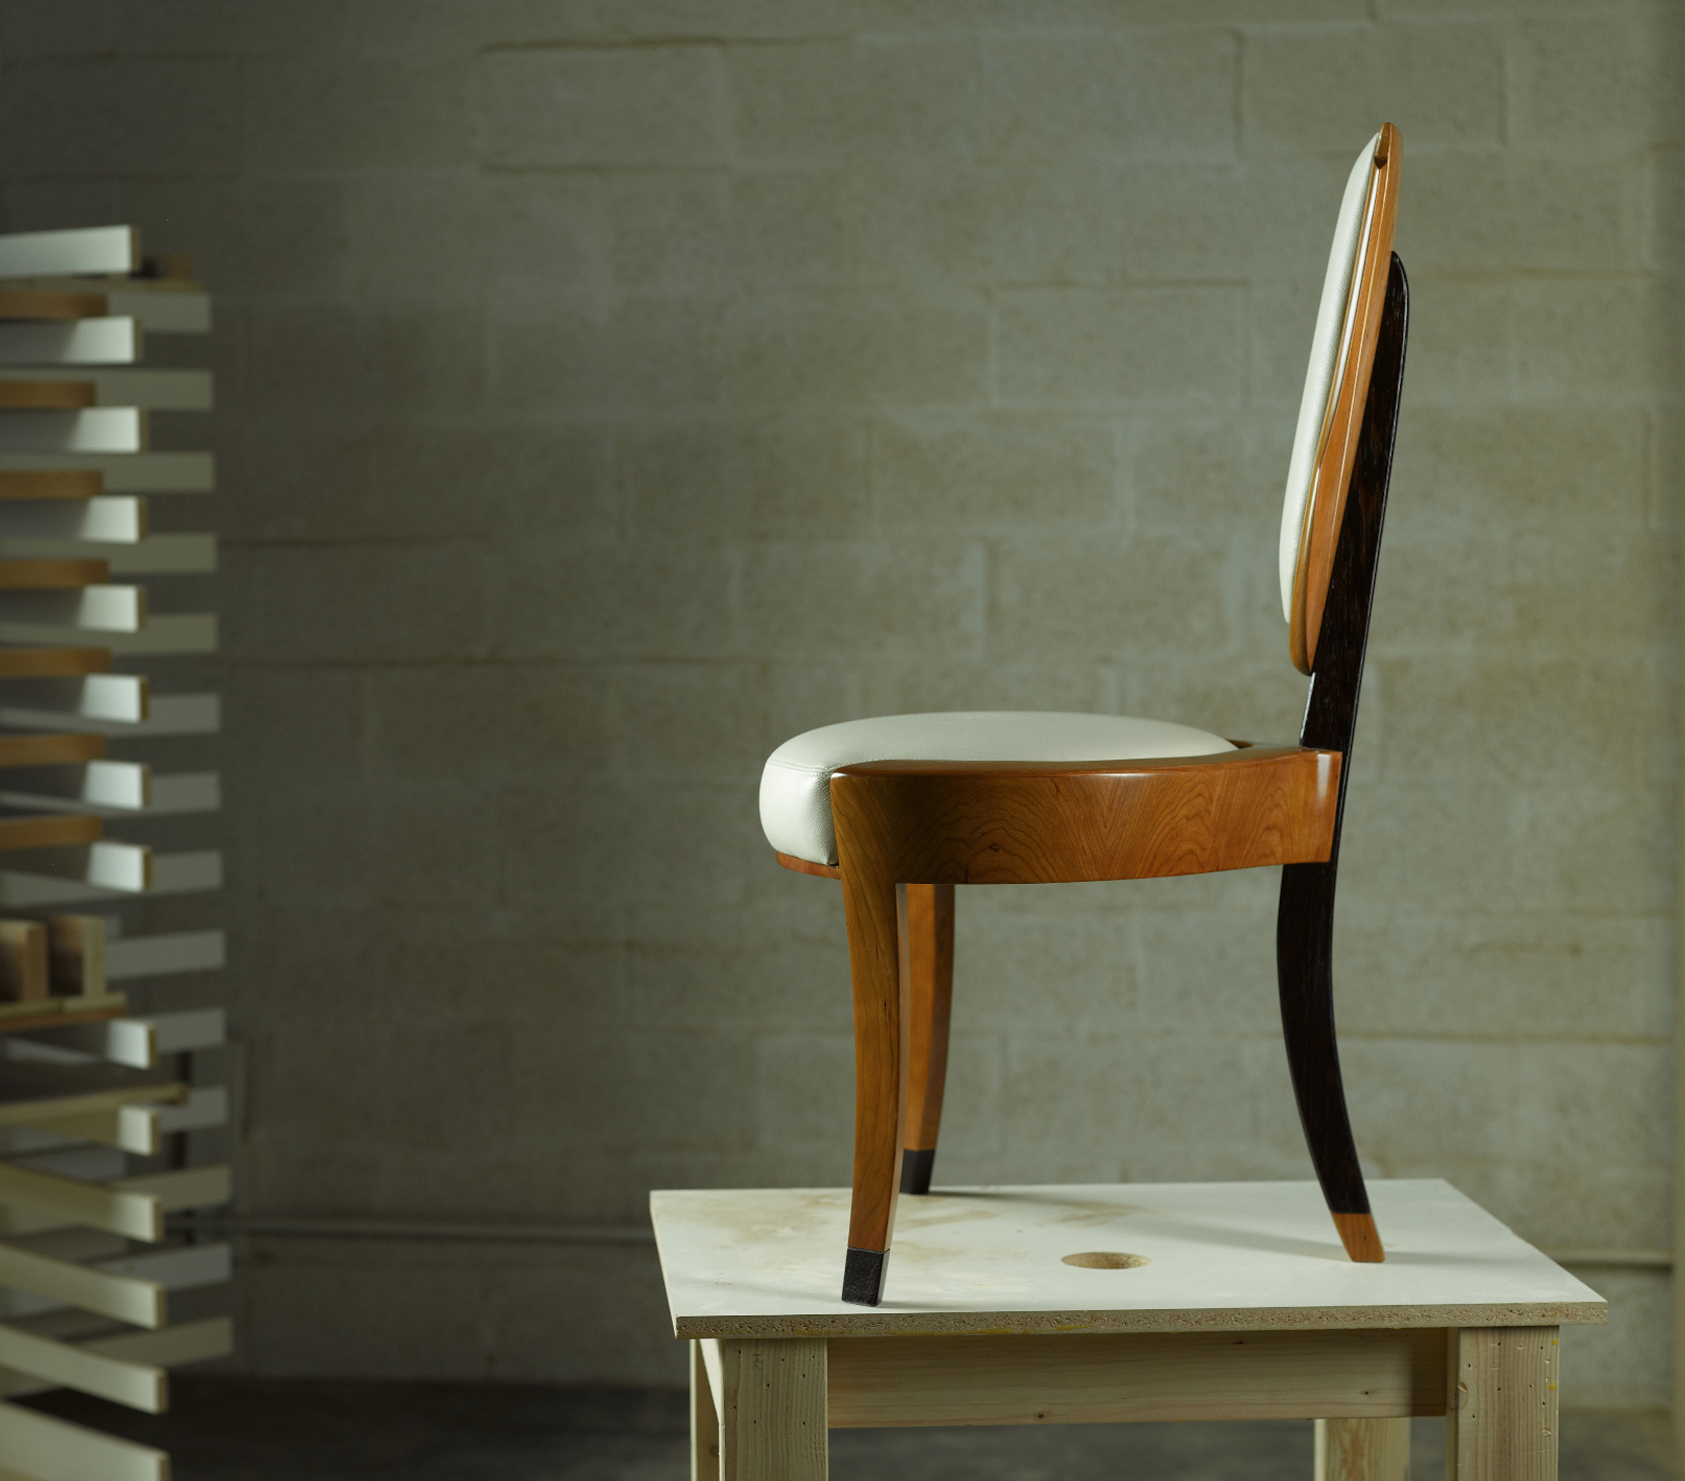 ... Vanity Chairs Contemporary Wood With Leather Upholstery Three Legs By  Paul Rene Furniture And Cabinets Phoenix ...